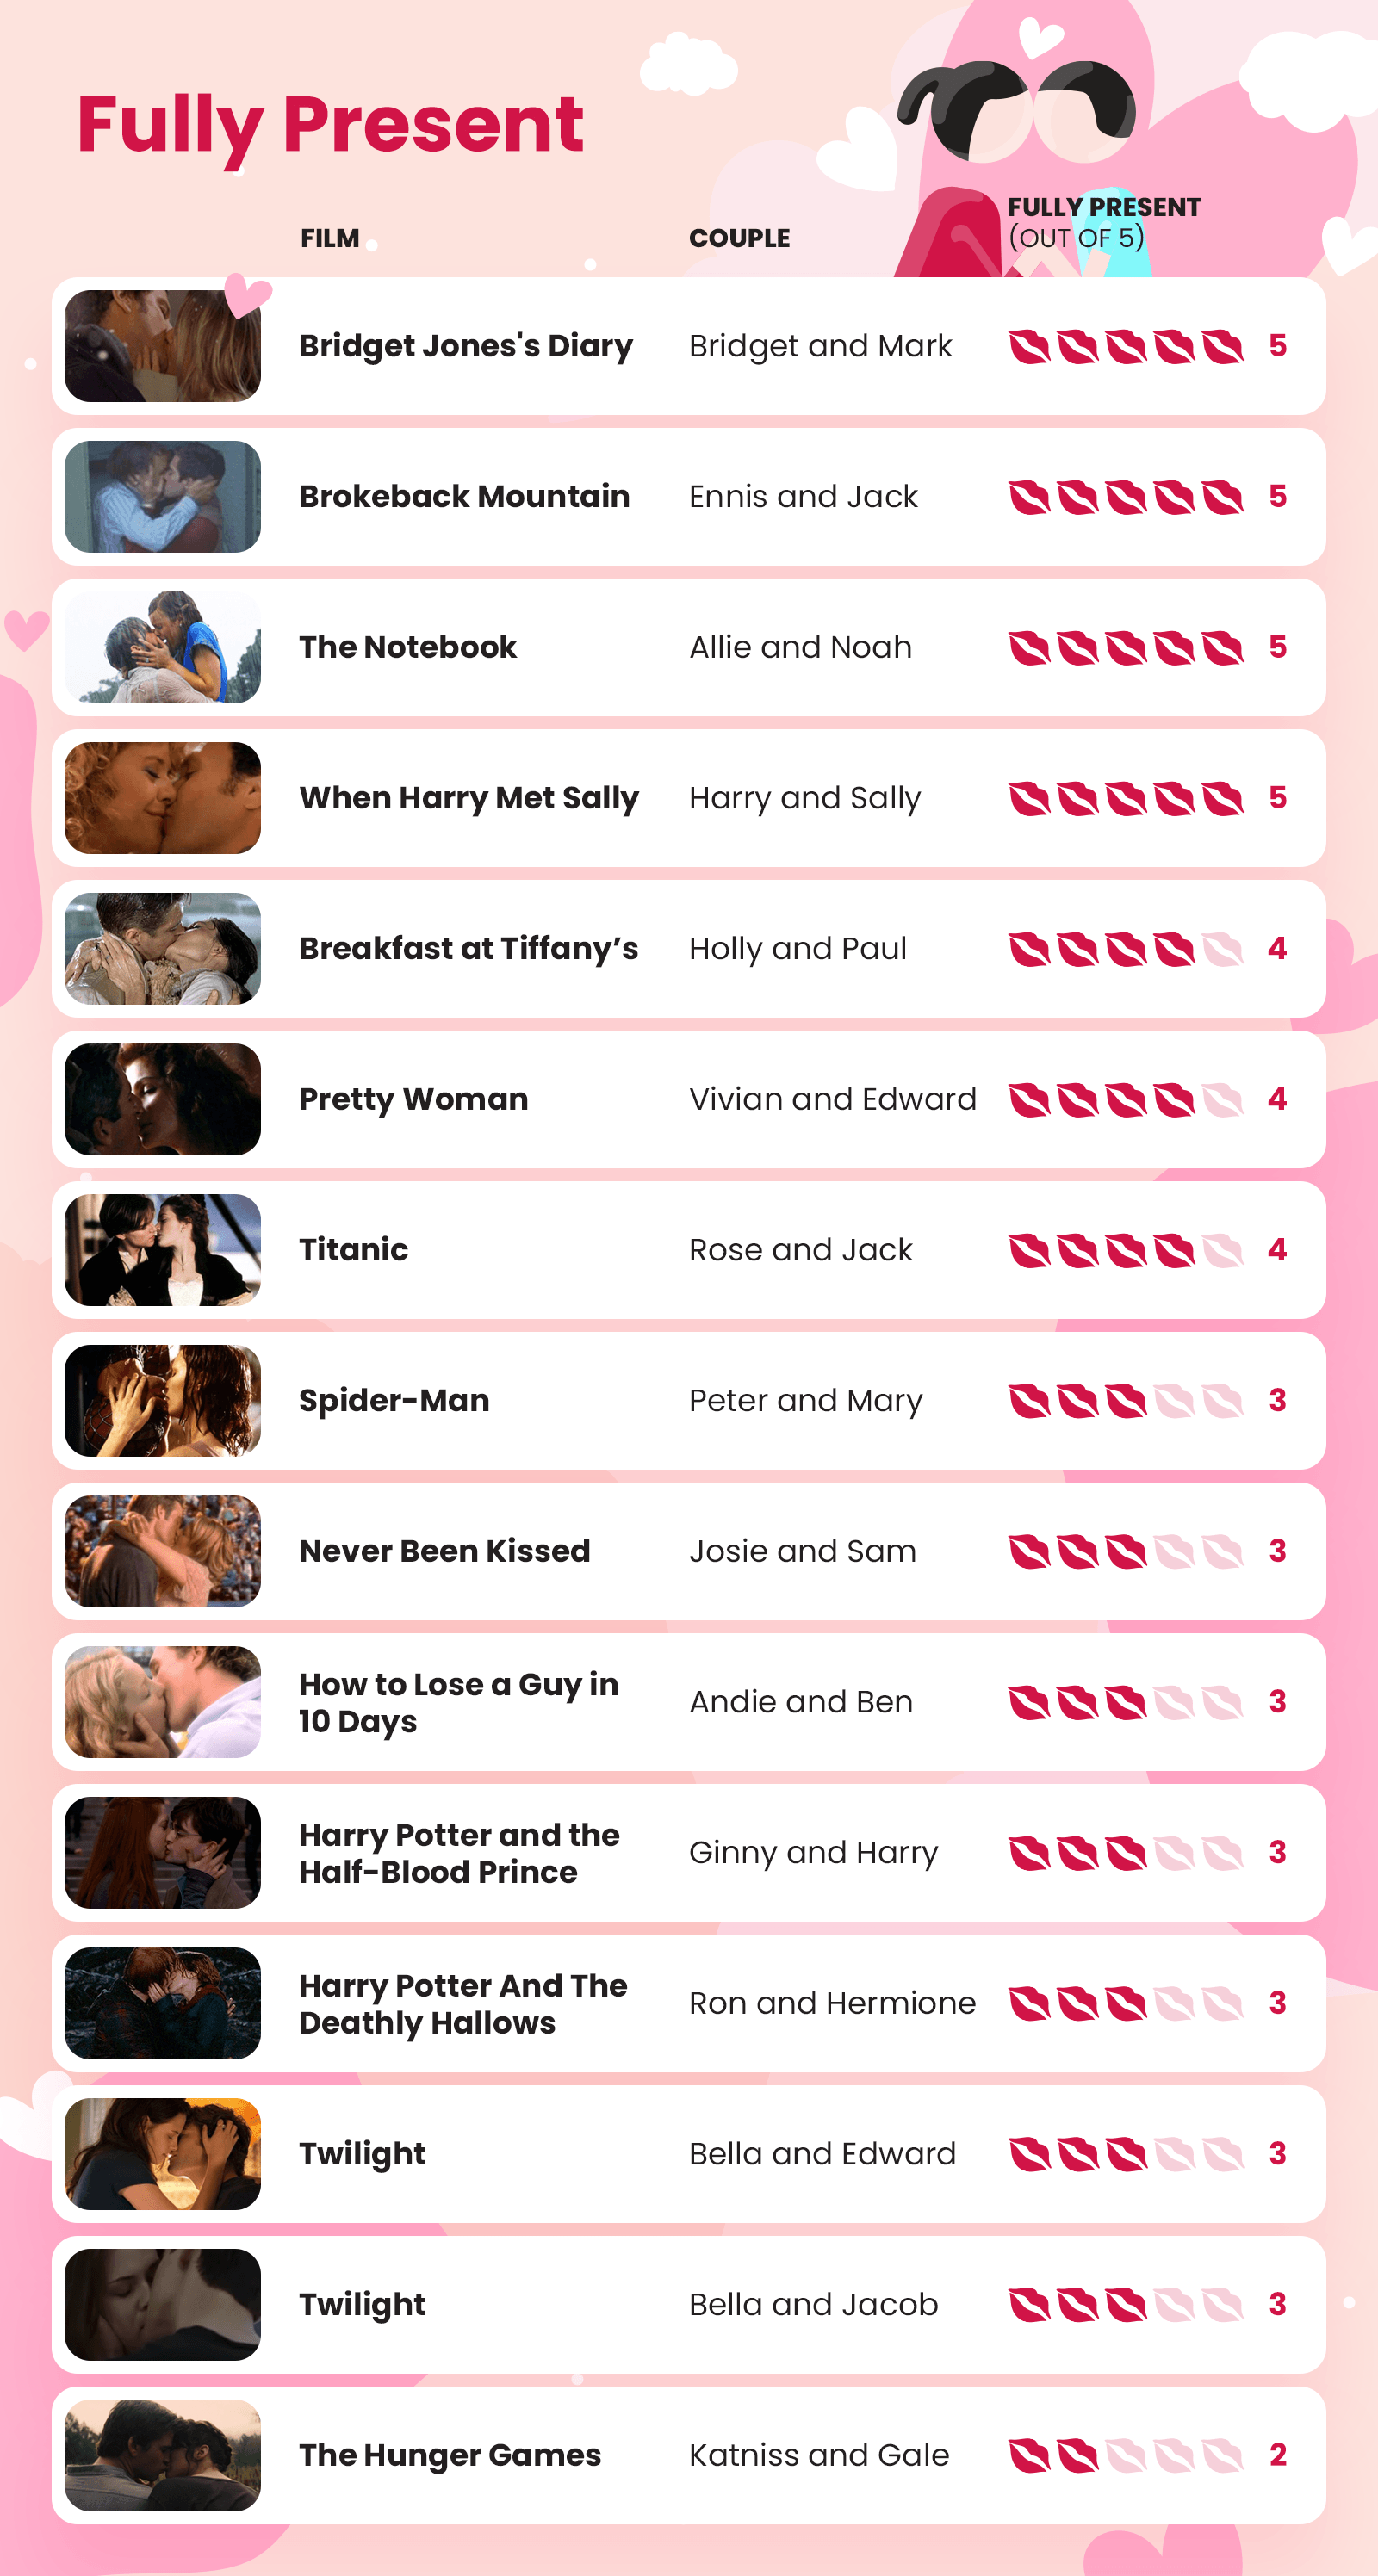 Kissing in film infographic - fully present score